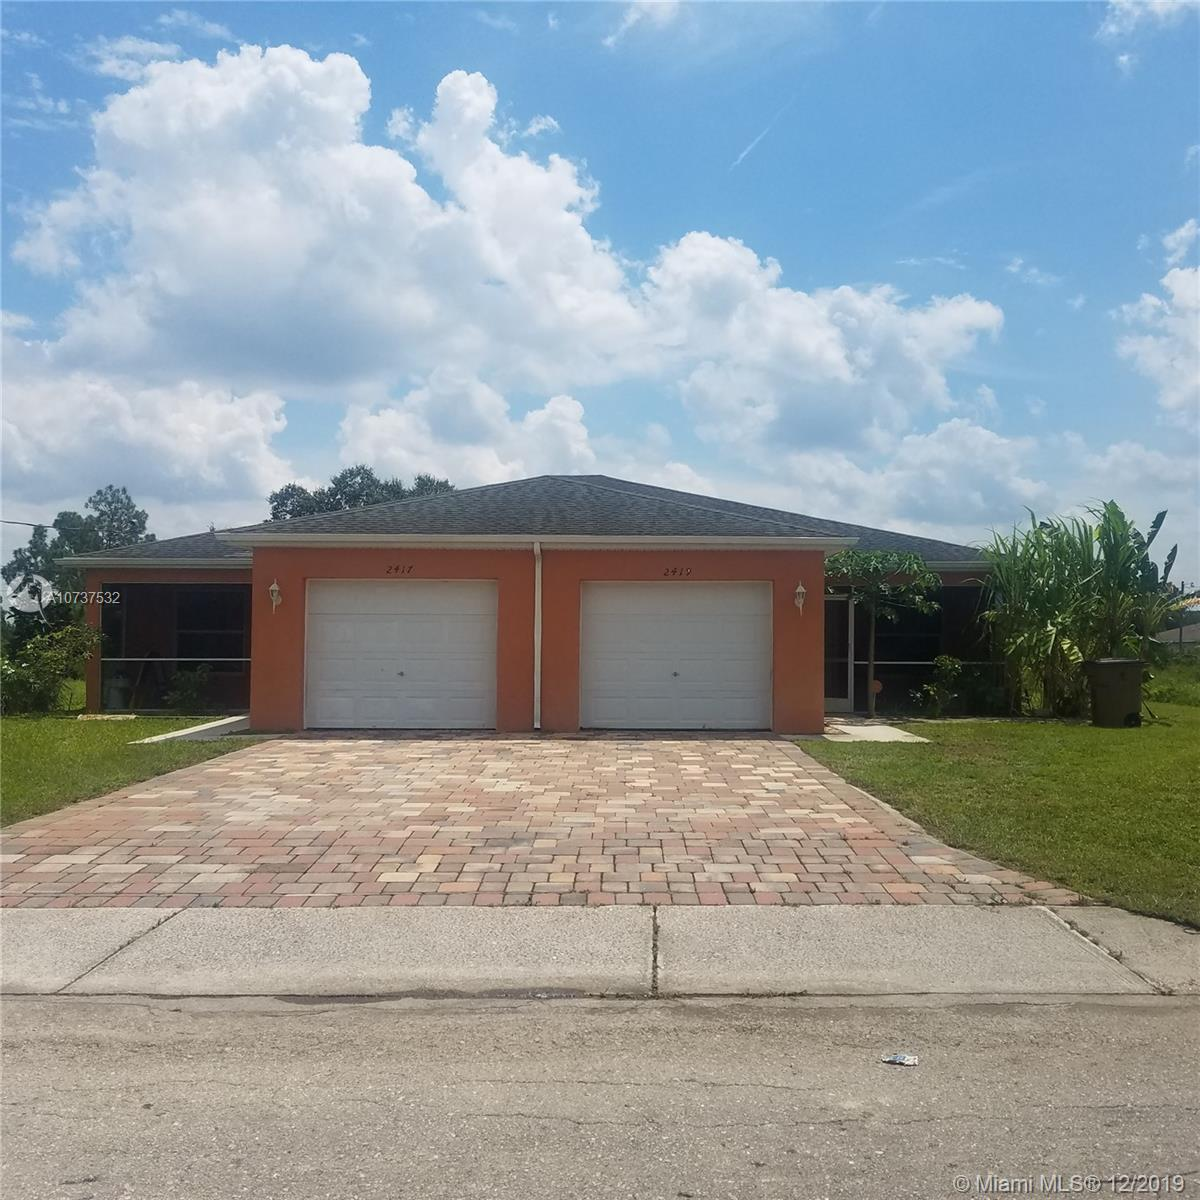 , Other City Value - Out Of Area, FL 33973